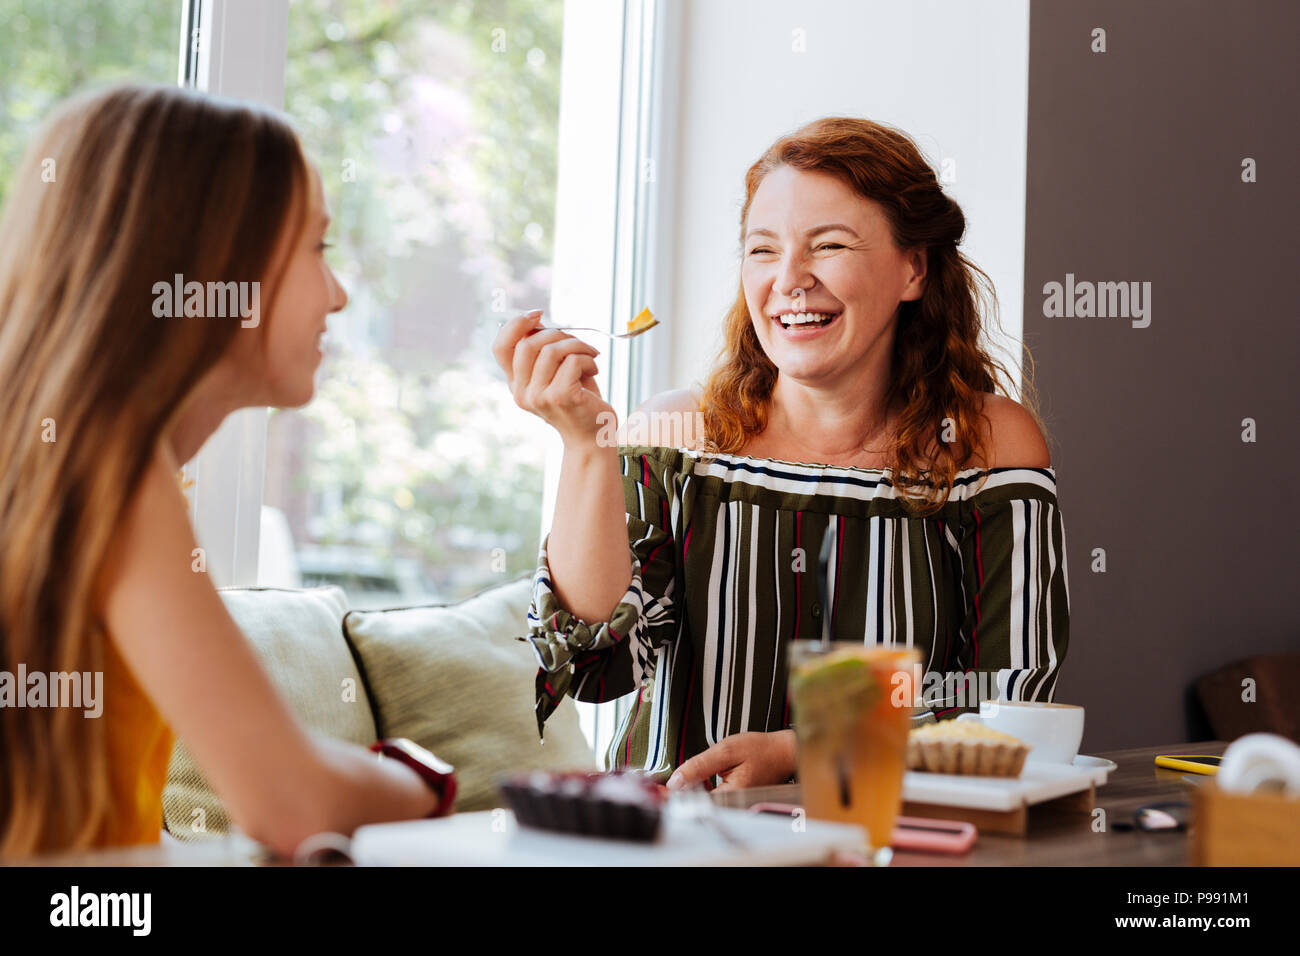 Red-haired woman laughing tout en parlant de fille Photo Stock